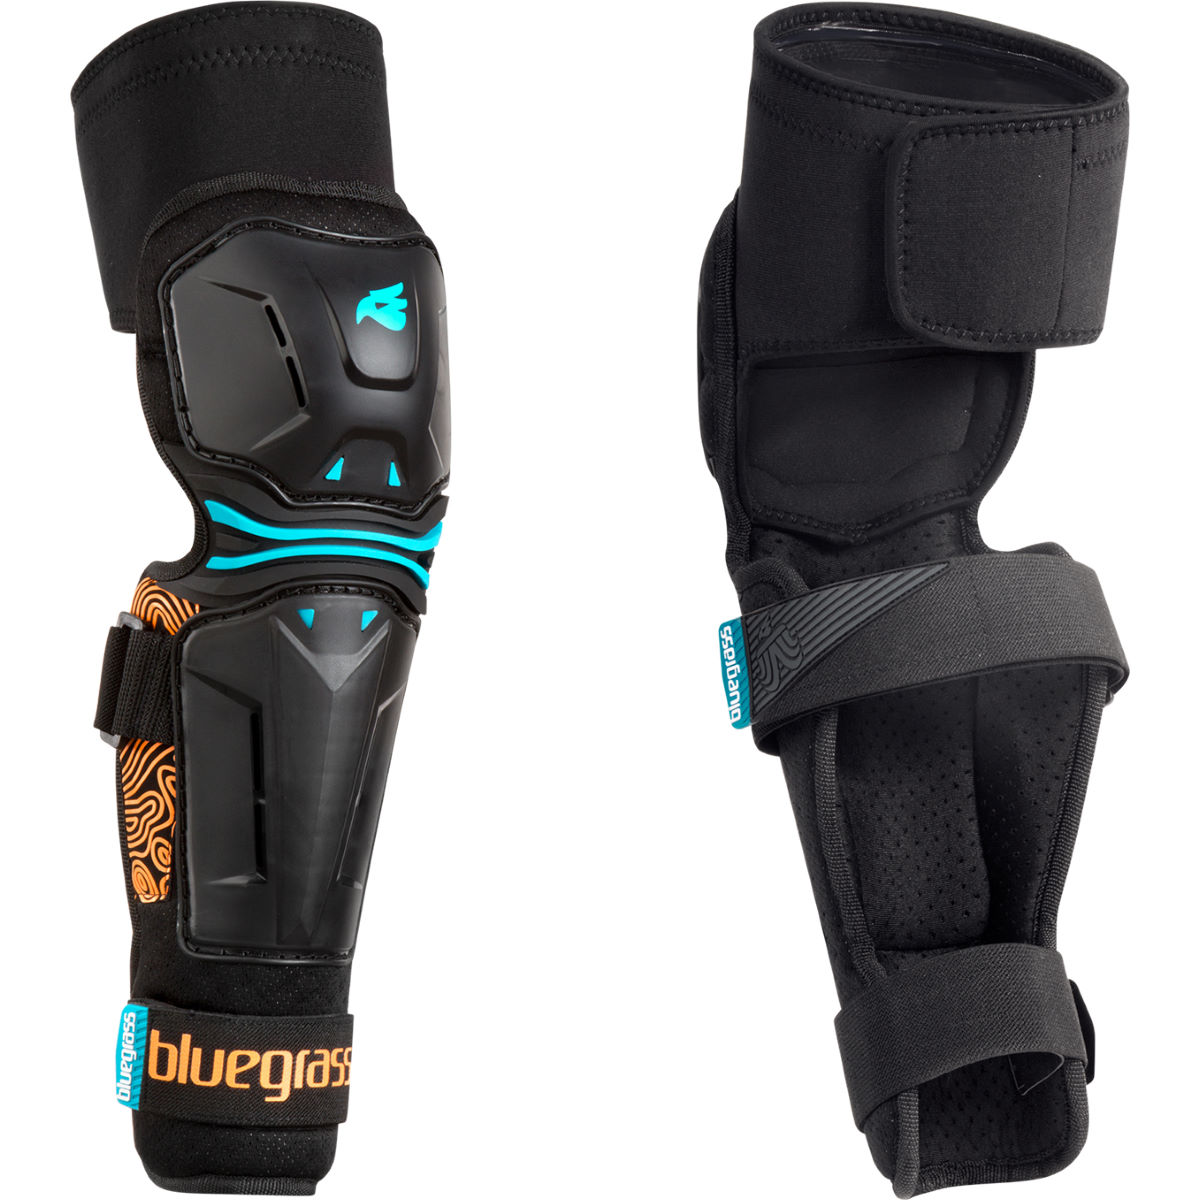 Bluegrass Big Horn Junior Knee/Shin Guards - Rodilleras